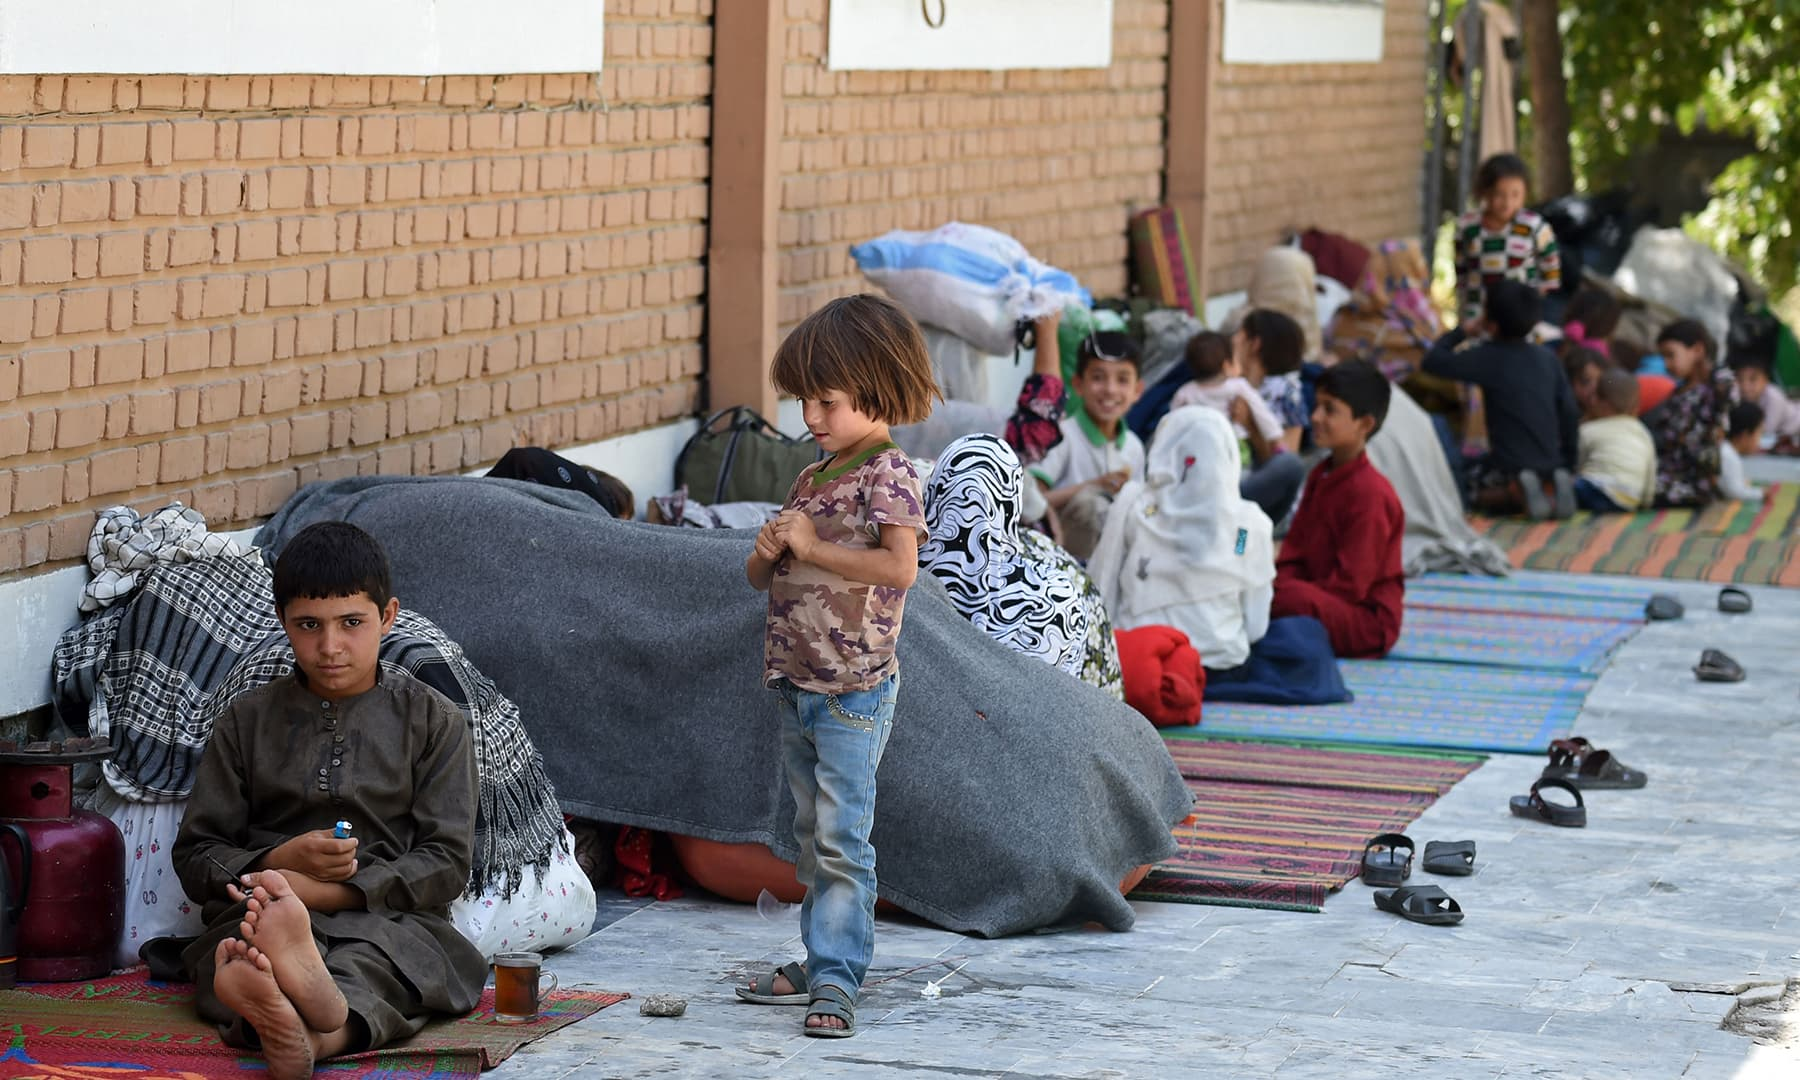 Internally displaced Afghan families, who fled from the northern province due to fighting between the Taliban and Afghan security forces, sit in the courtyard of the Wazir Akbar Khan mosque in Kabul on August 13. — AFP